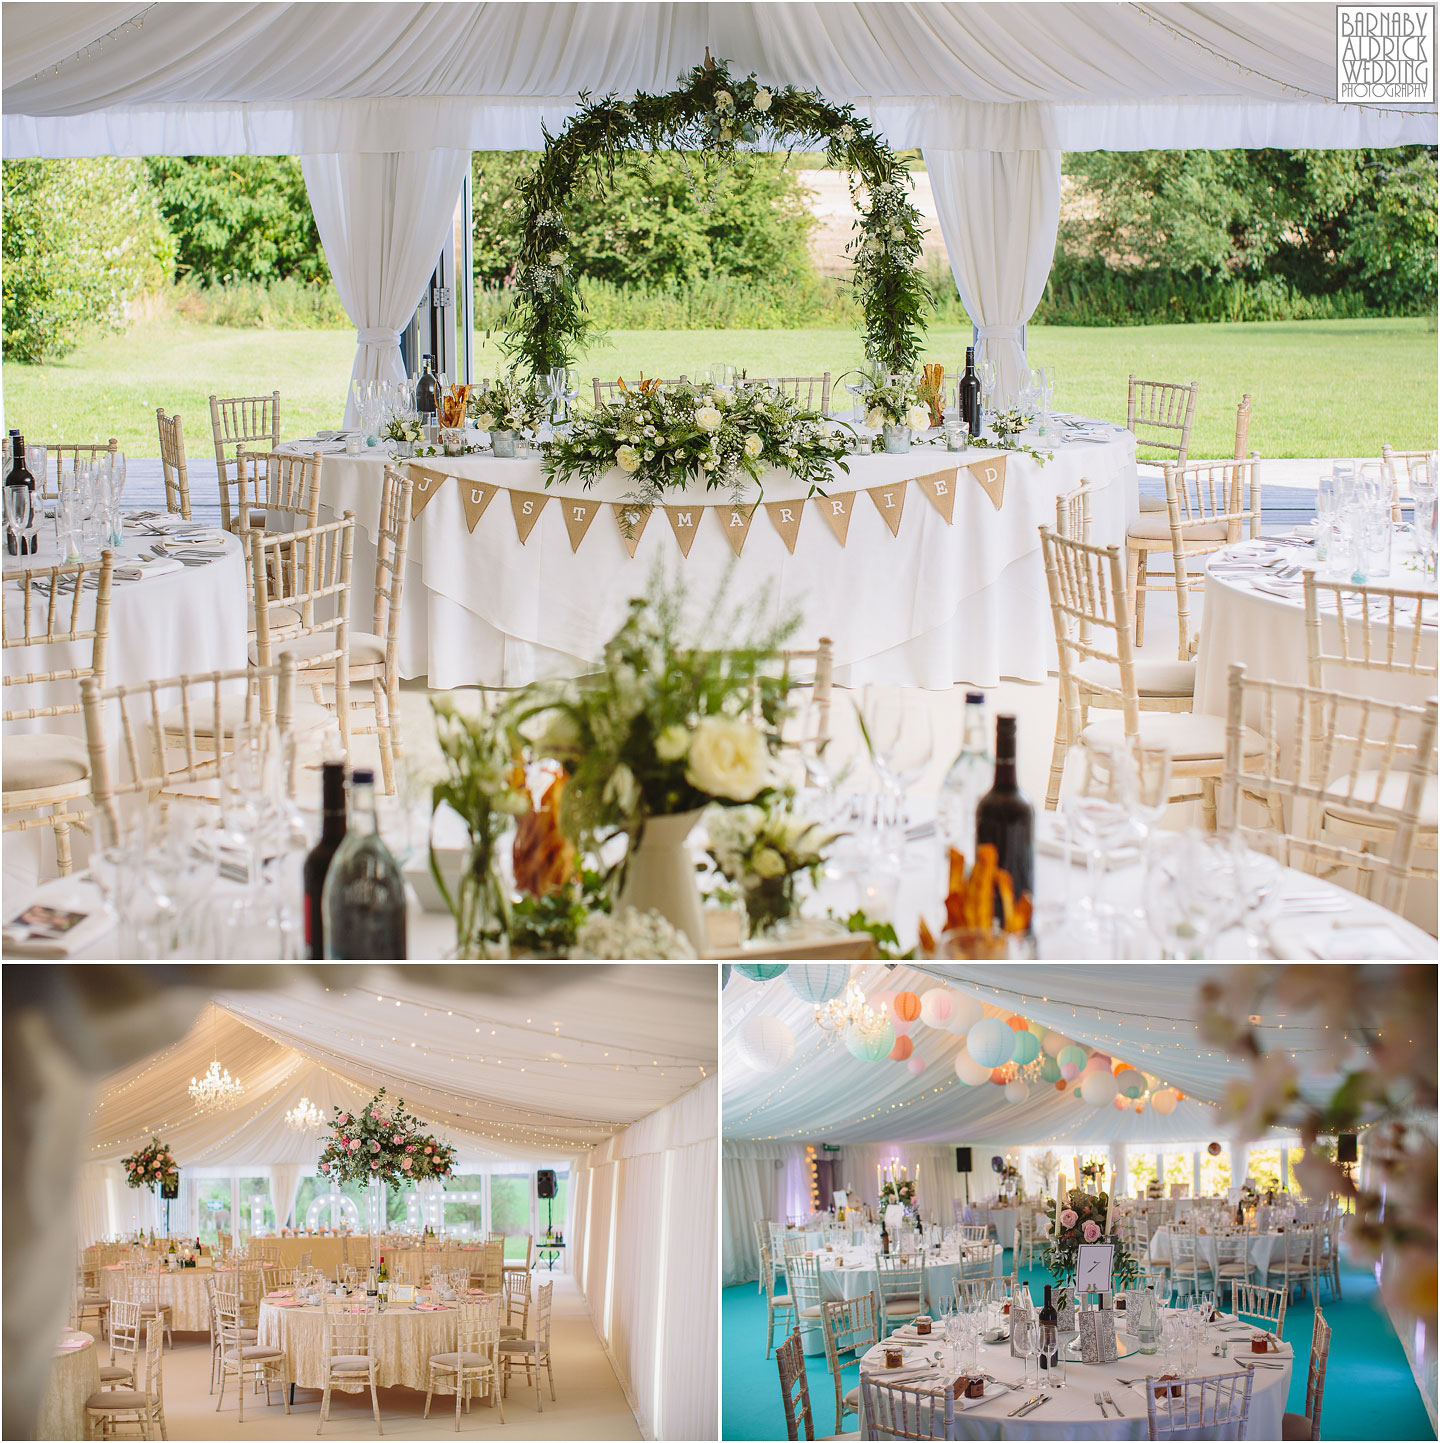 Wedding Photos At Priory Cottages Near Wetherby: Ideas